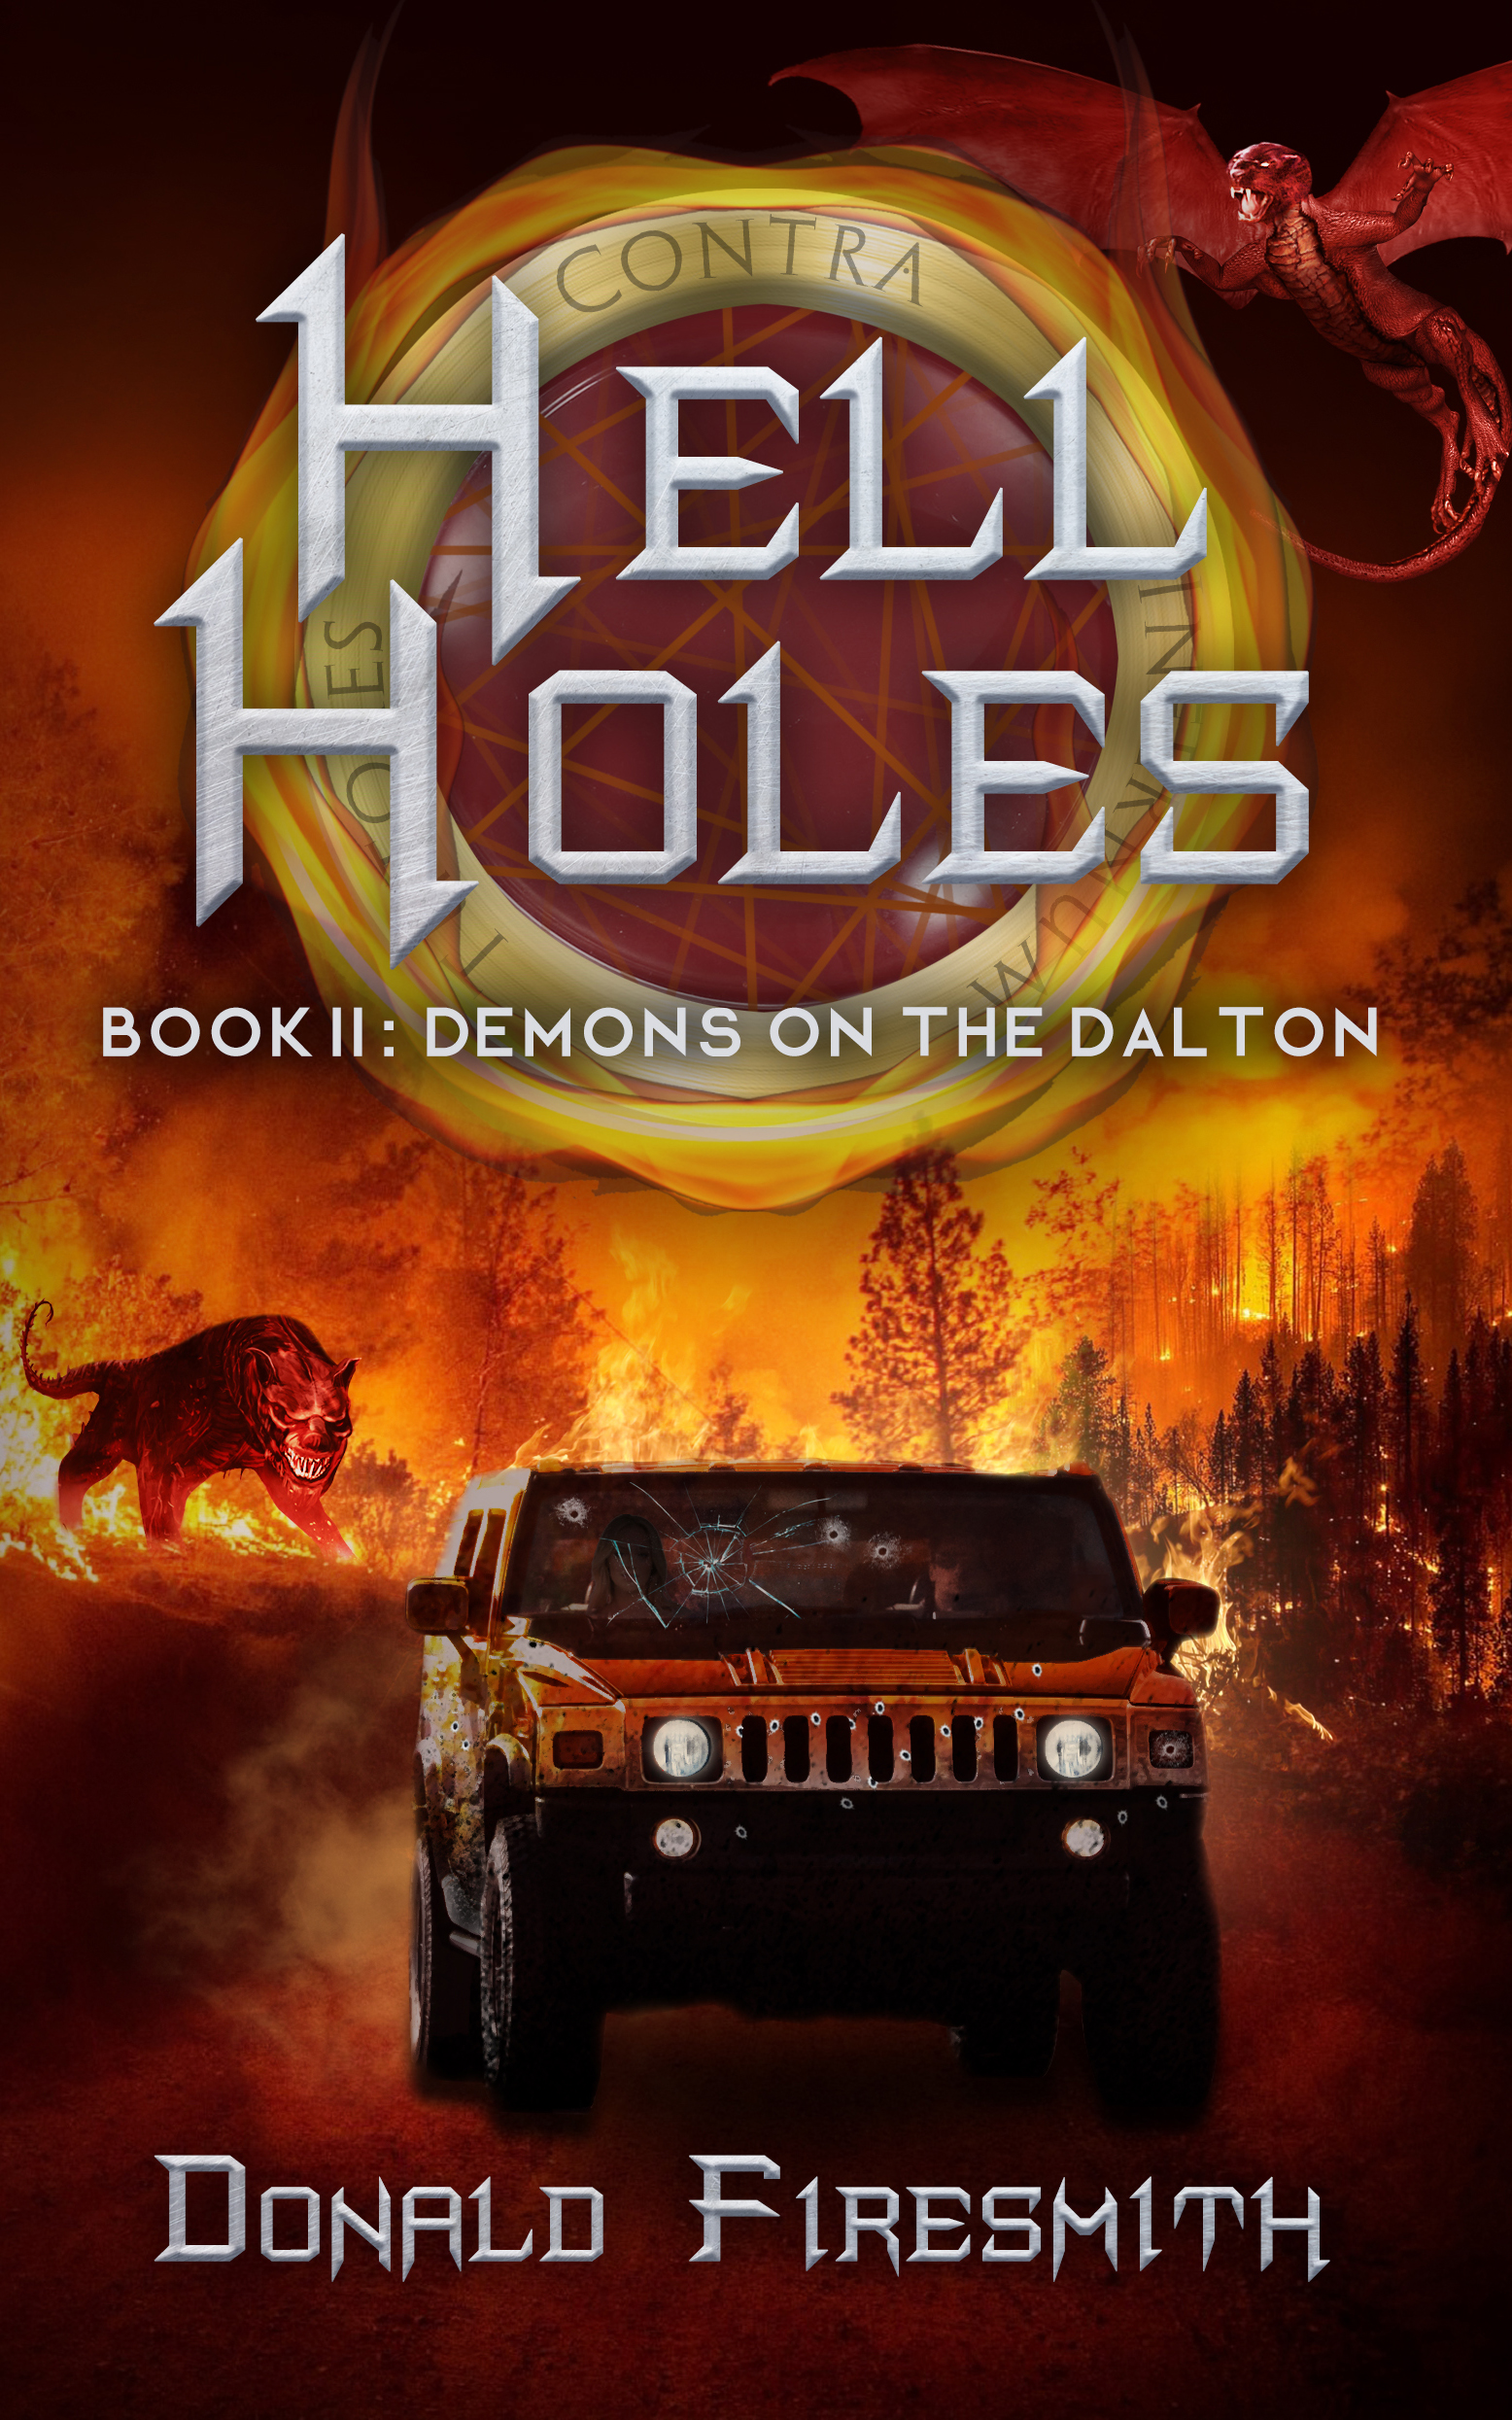 The front cover of Hell Holes: Demons on the Dalton